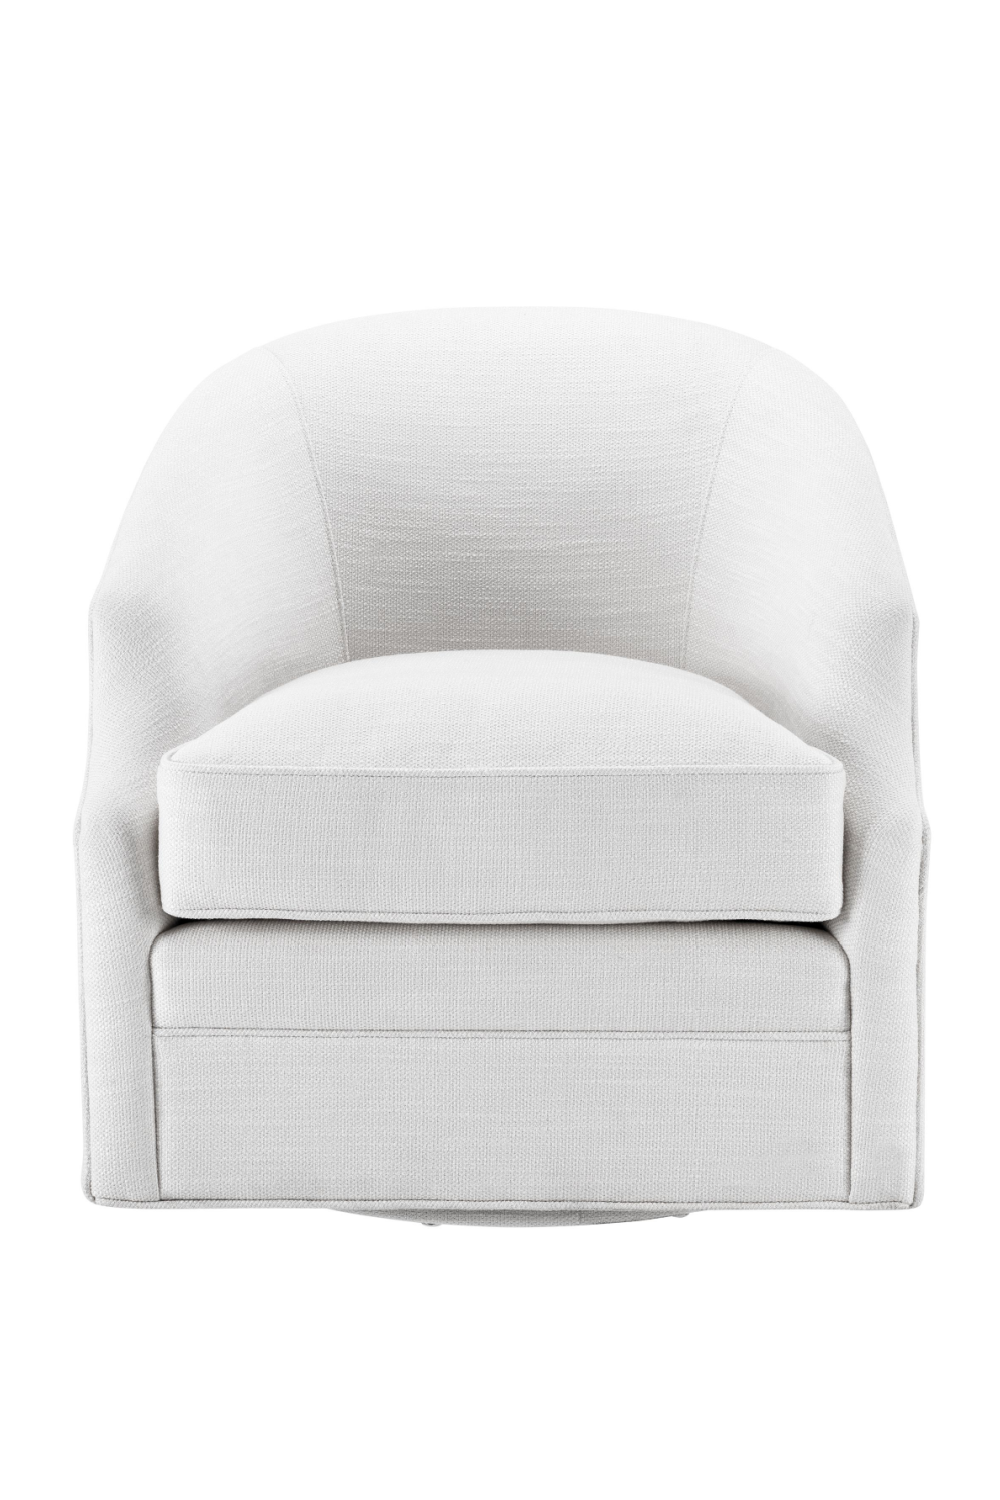 Avalon White Swivel Chair | Eichholtz Gustav